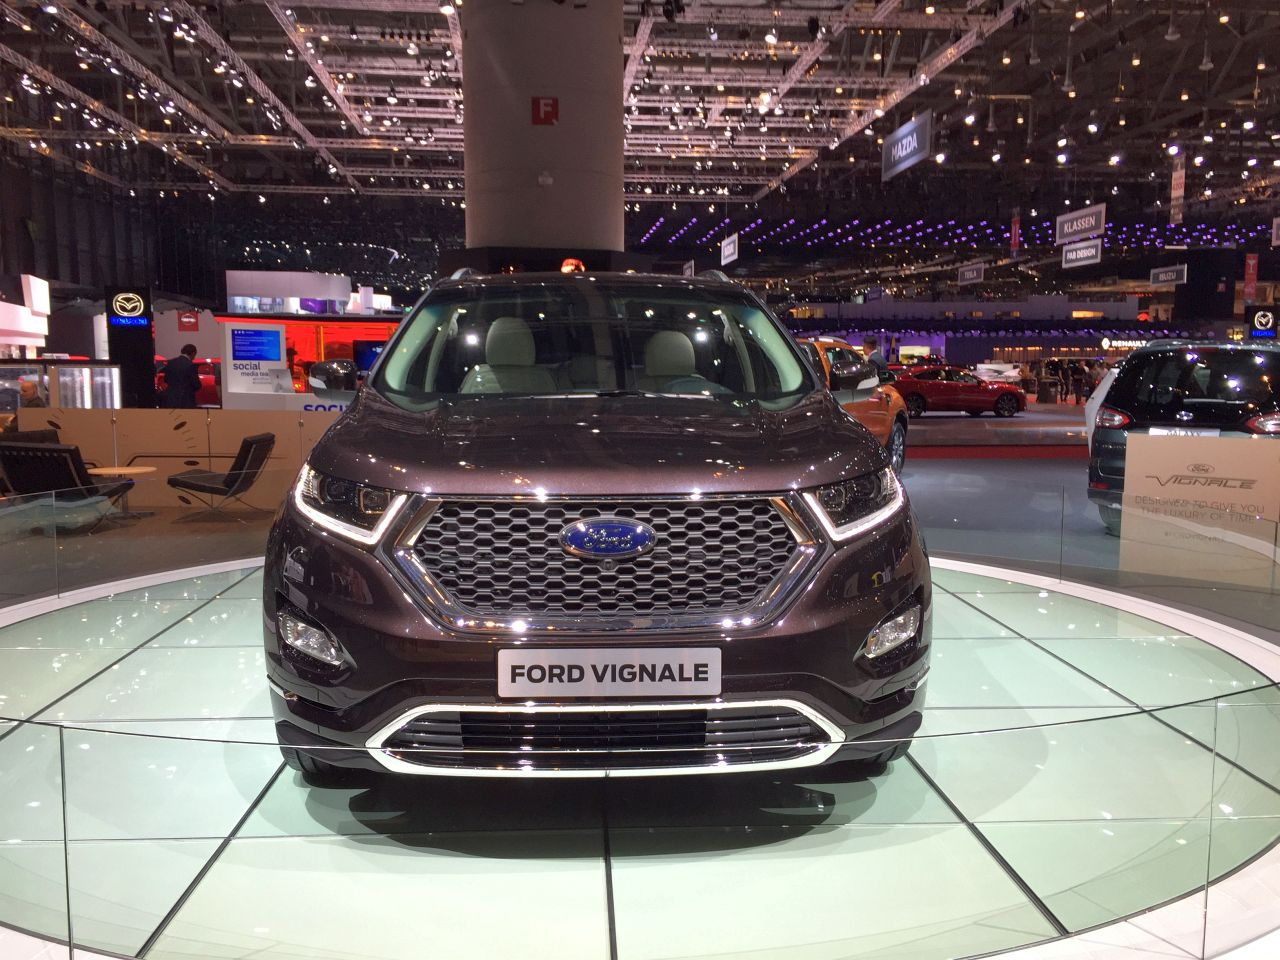 Ford Edge Vignale in Ametista Scura, einem starken Braun-Metallic